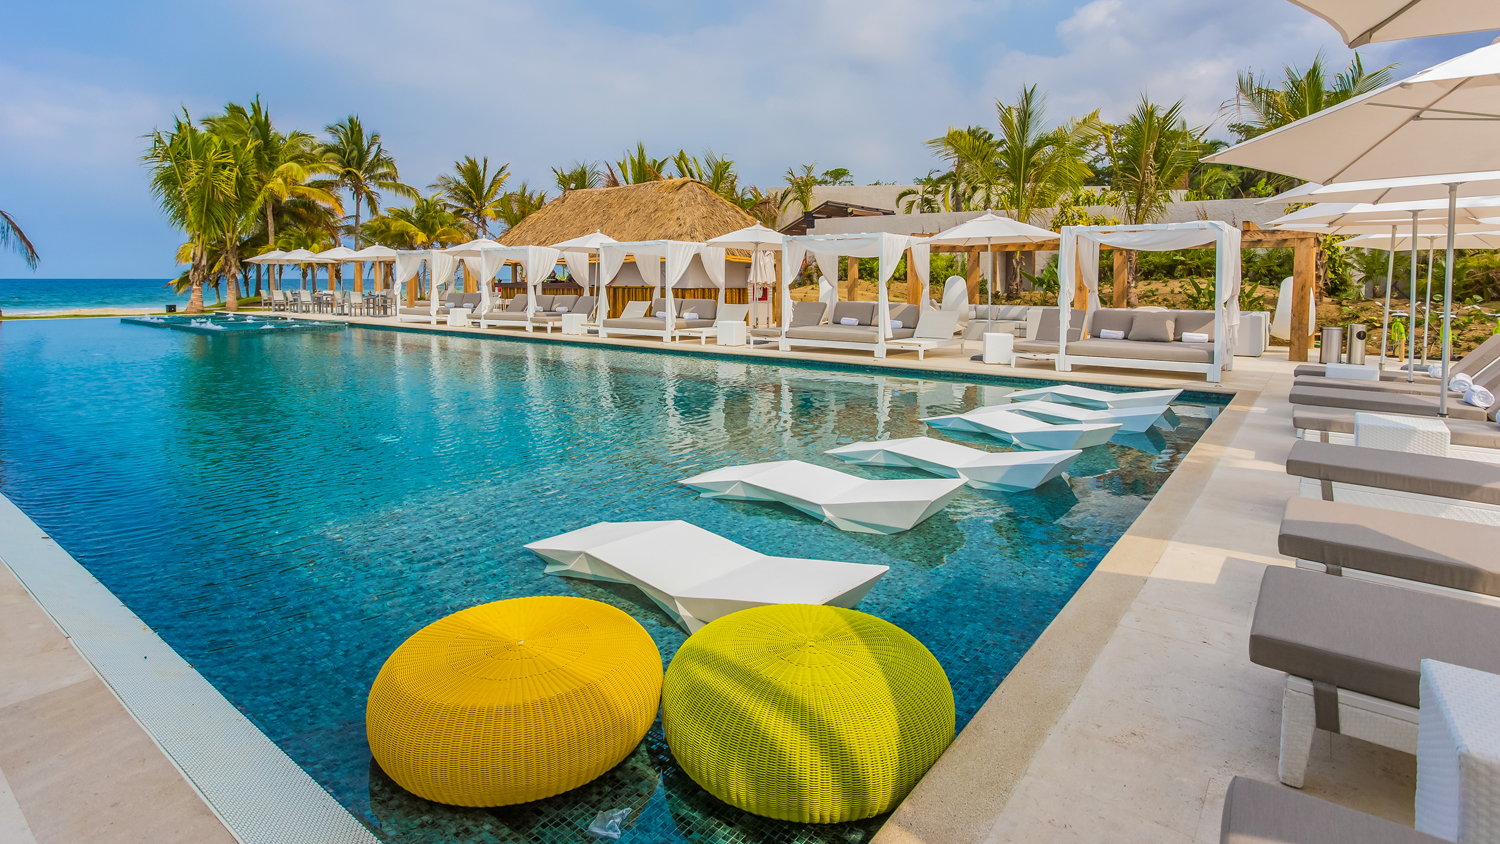 Riviera Nayarit Hotels Nominated by Condé Nast Traveler Awards